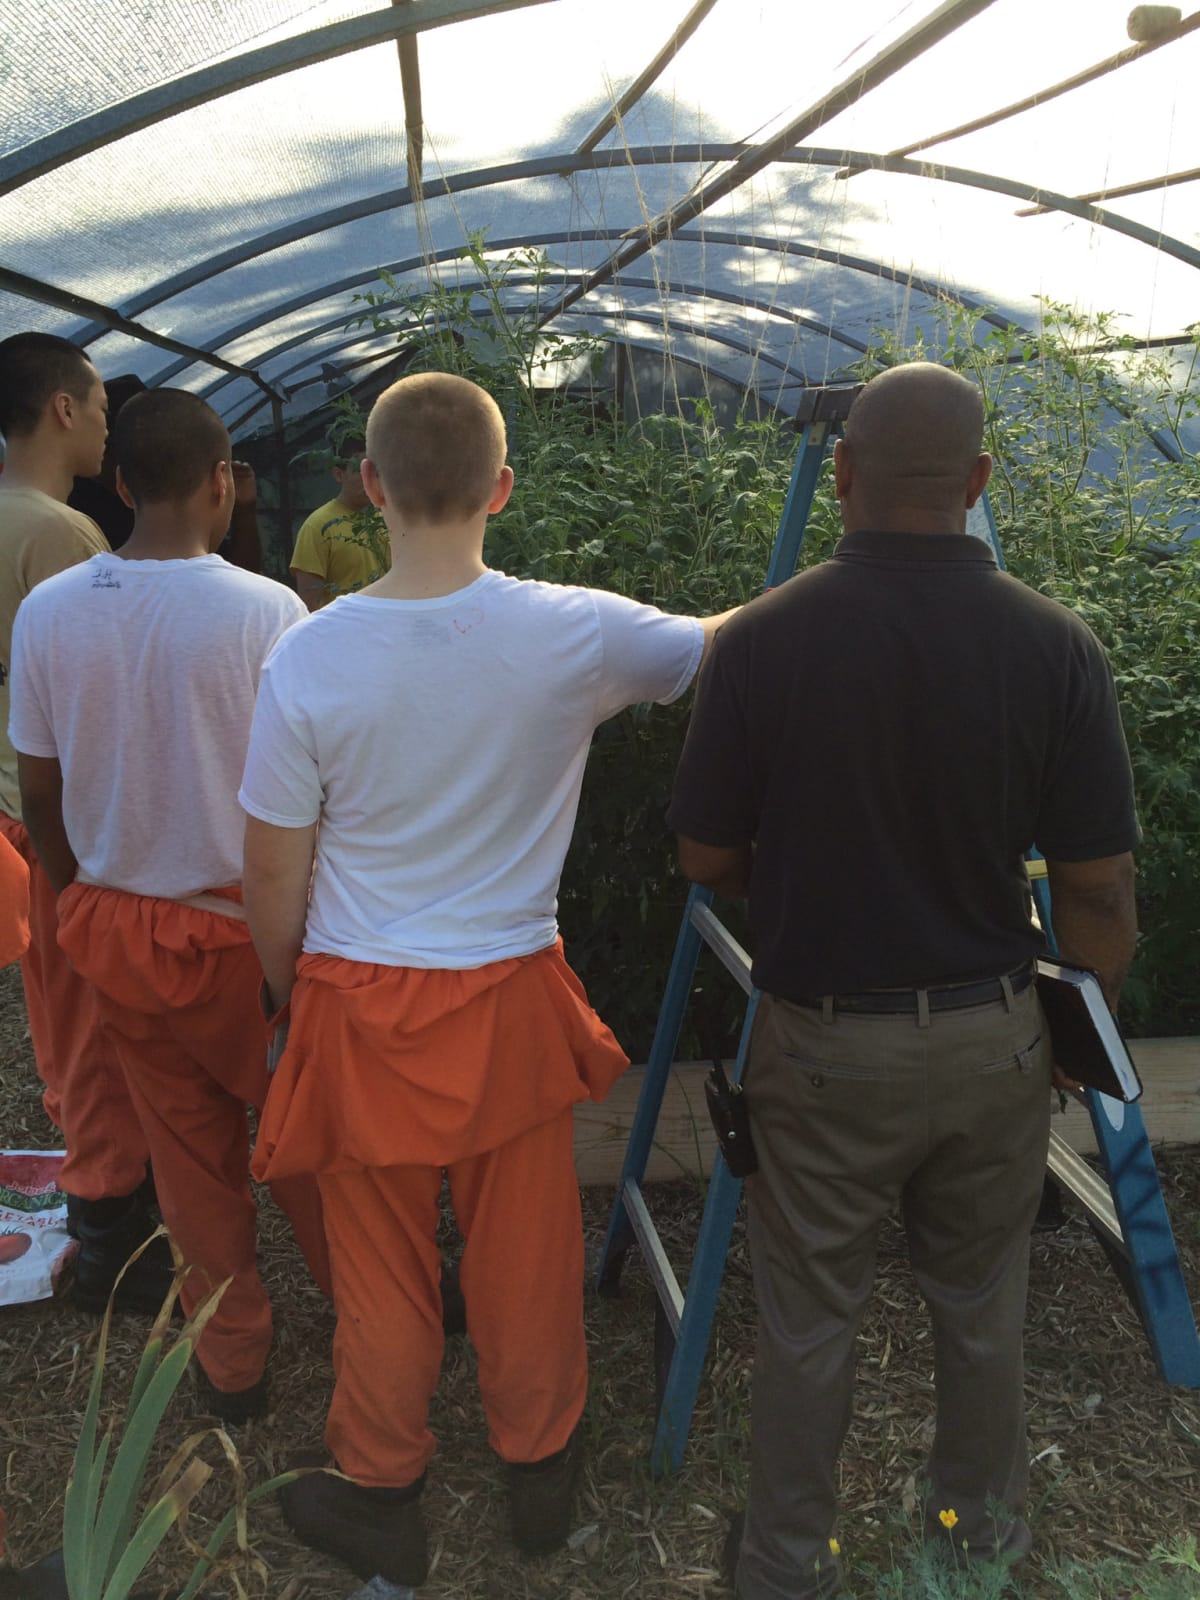 Young men in the Horticulture Therapy program manage the gardens at Youth Village